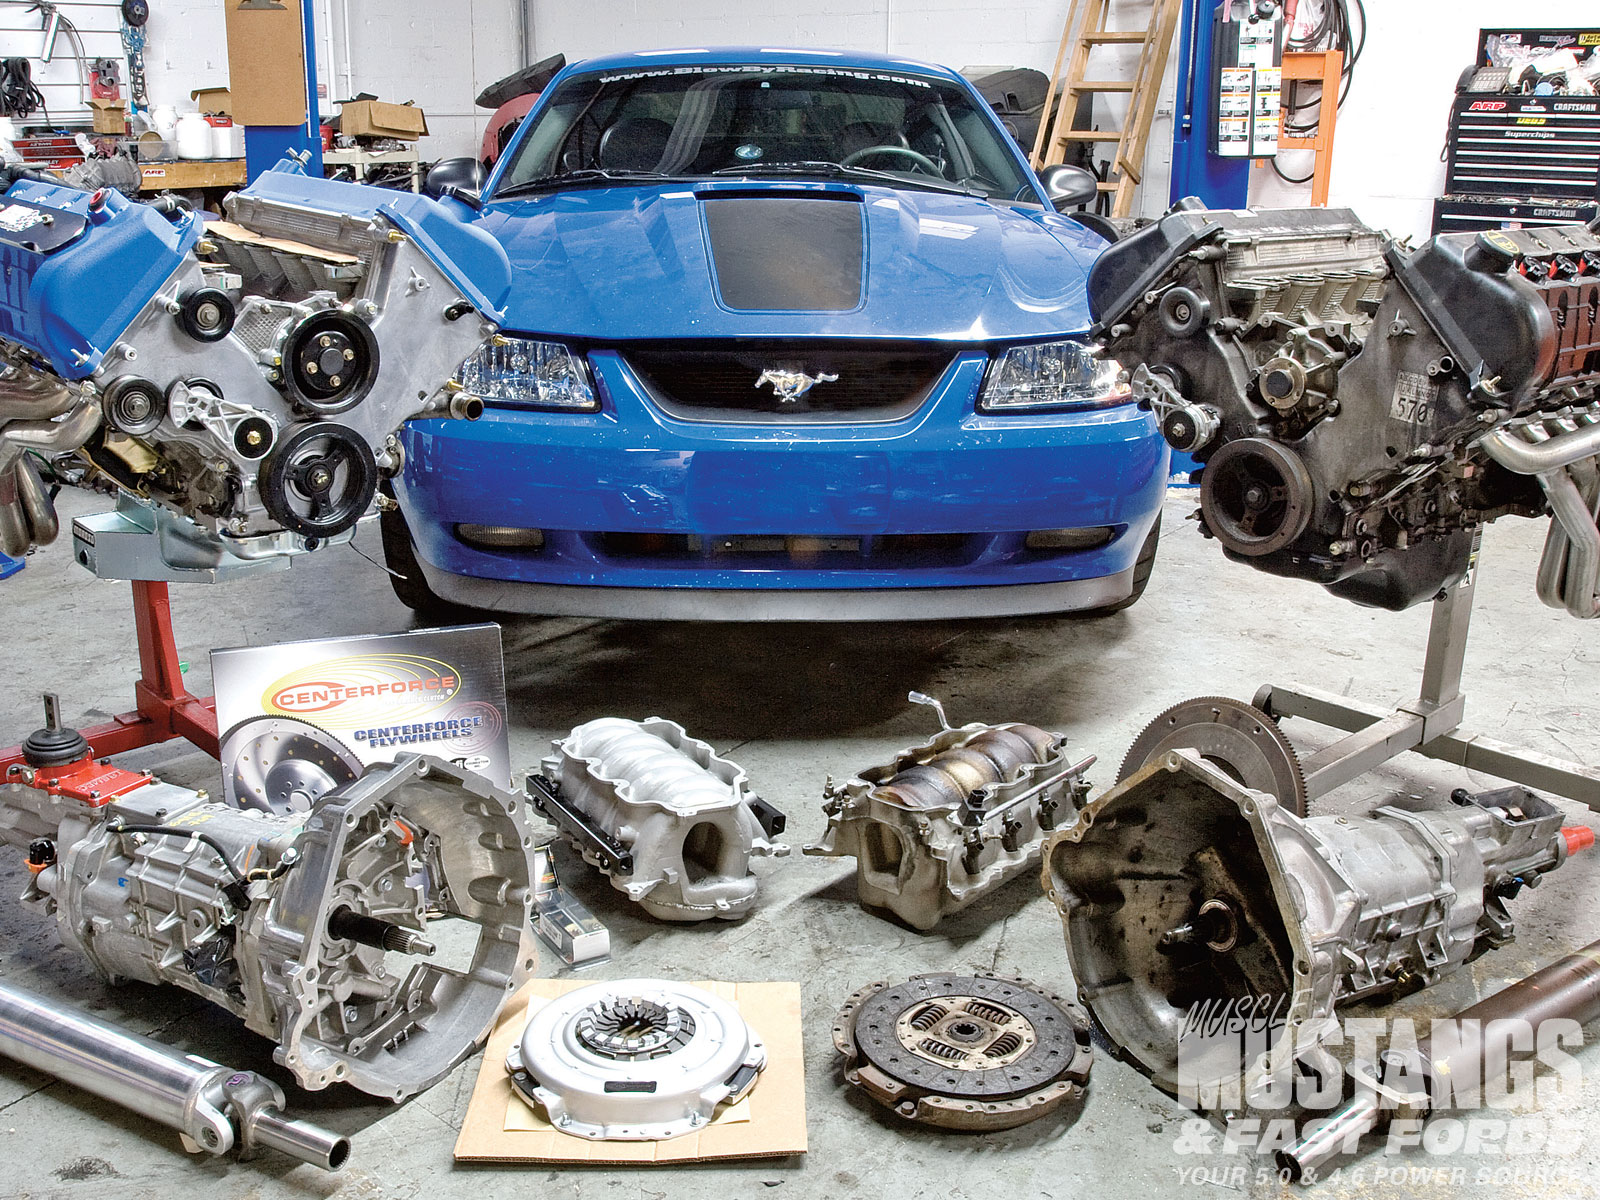 2003 ford mustang mach 1 ford racing performance parts aluminator crate engine photo image gallery